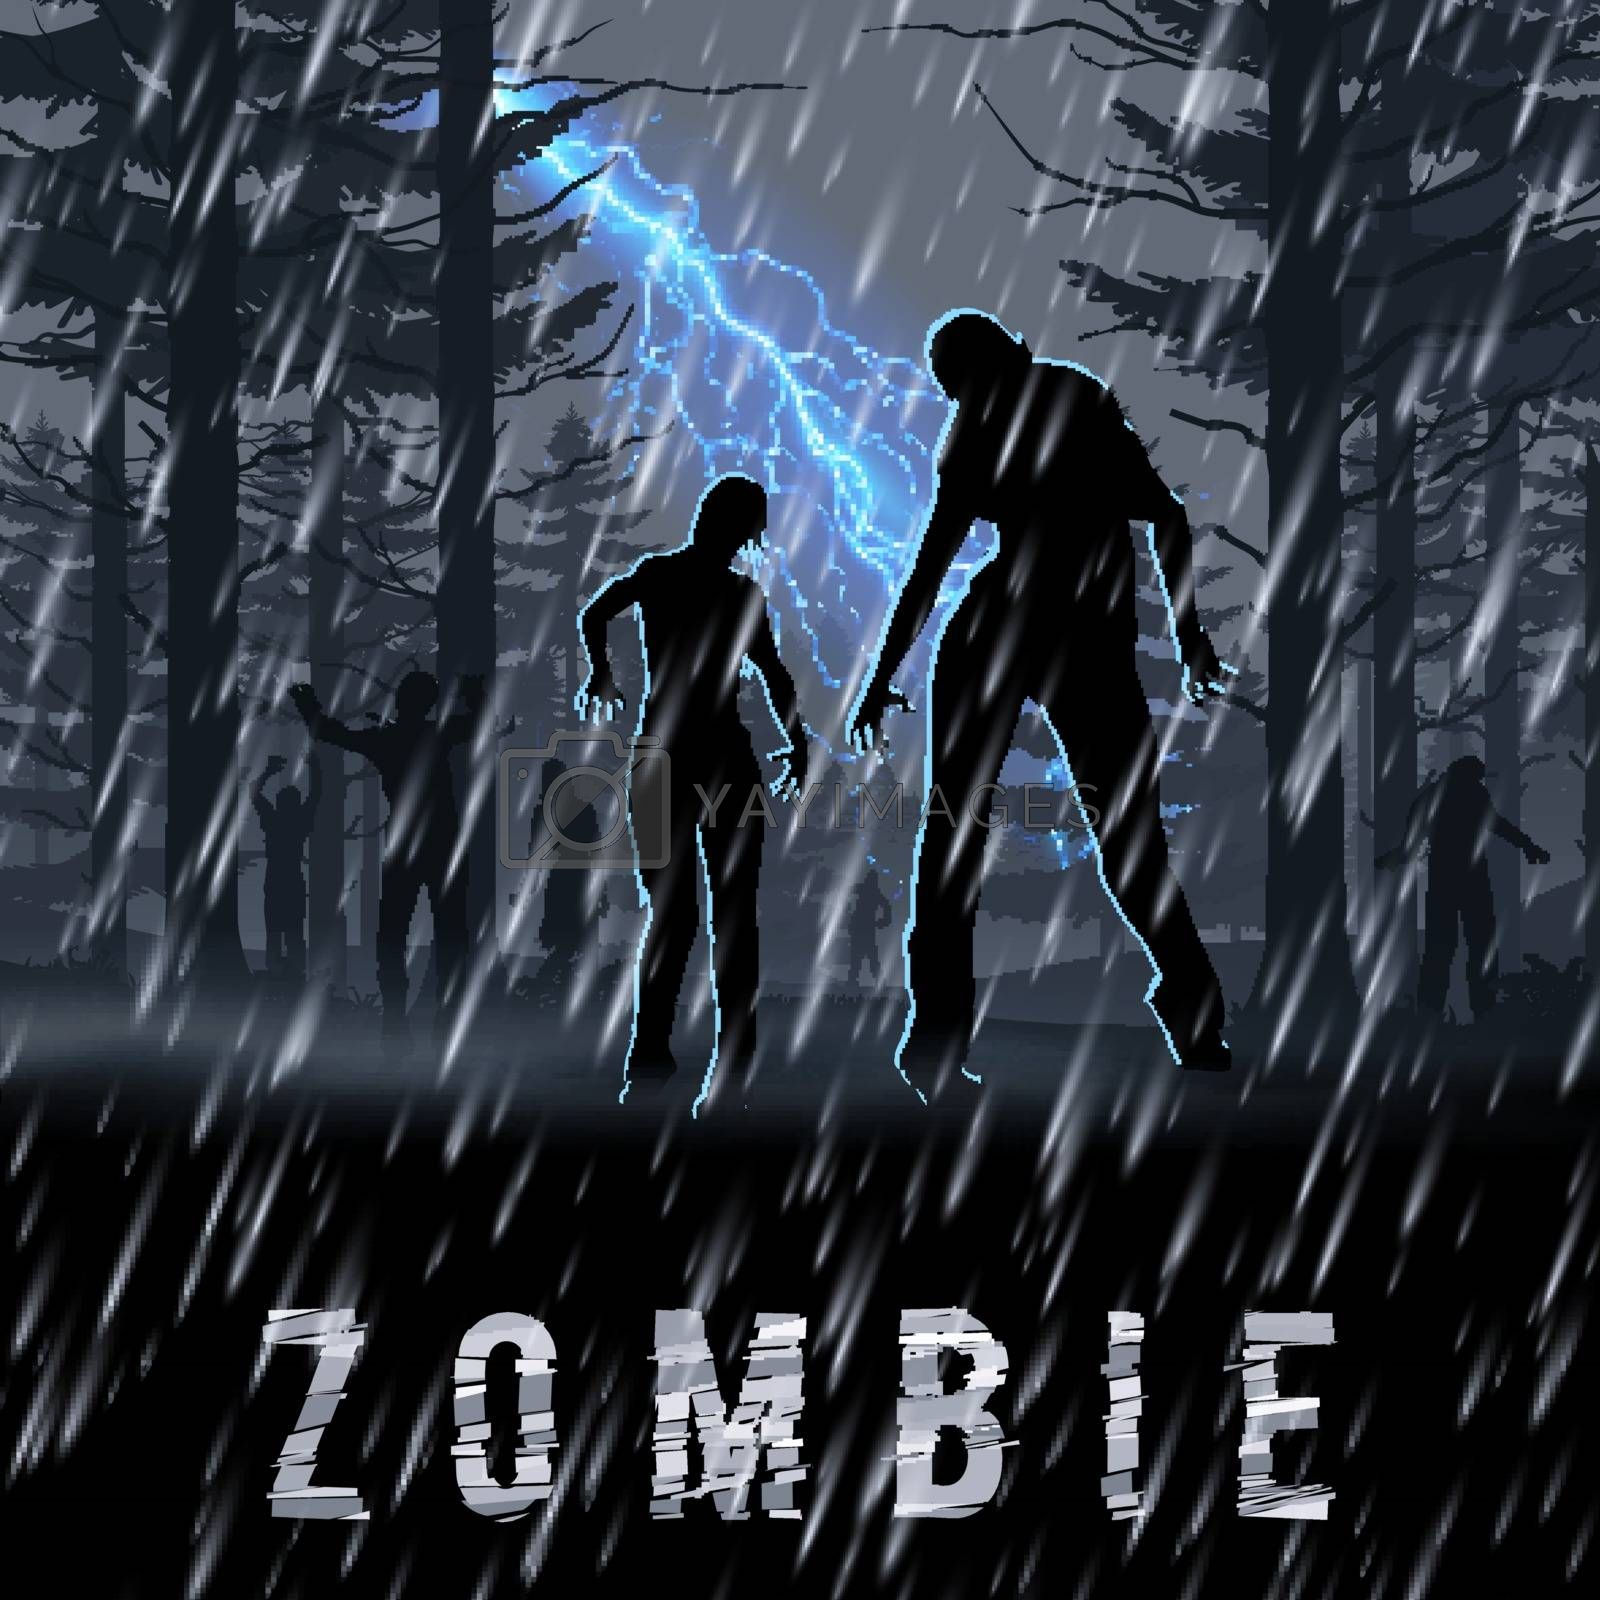 Zombie Walking out From Night Forest in a Rainy Weather. Silhouettes Illustration for Halloween Poster